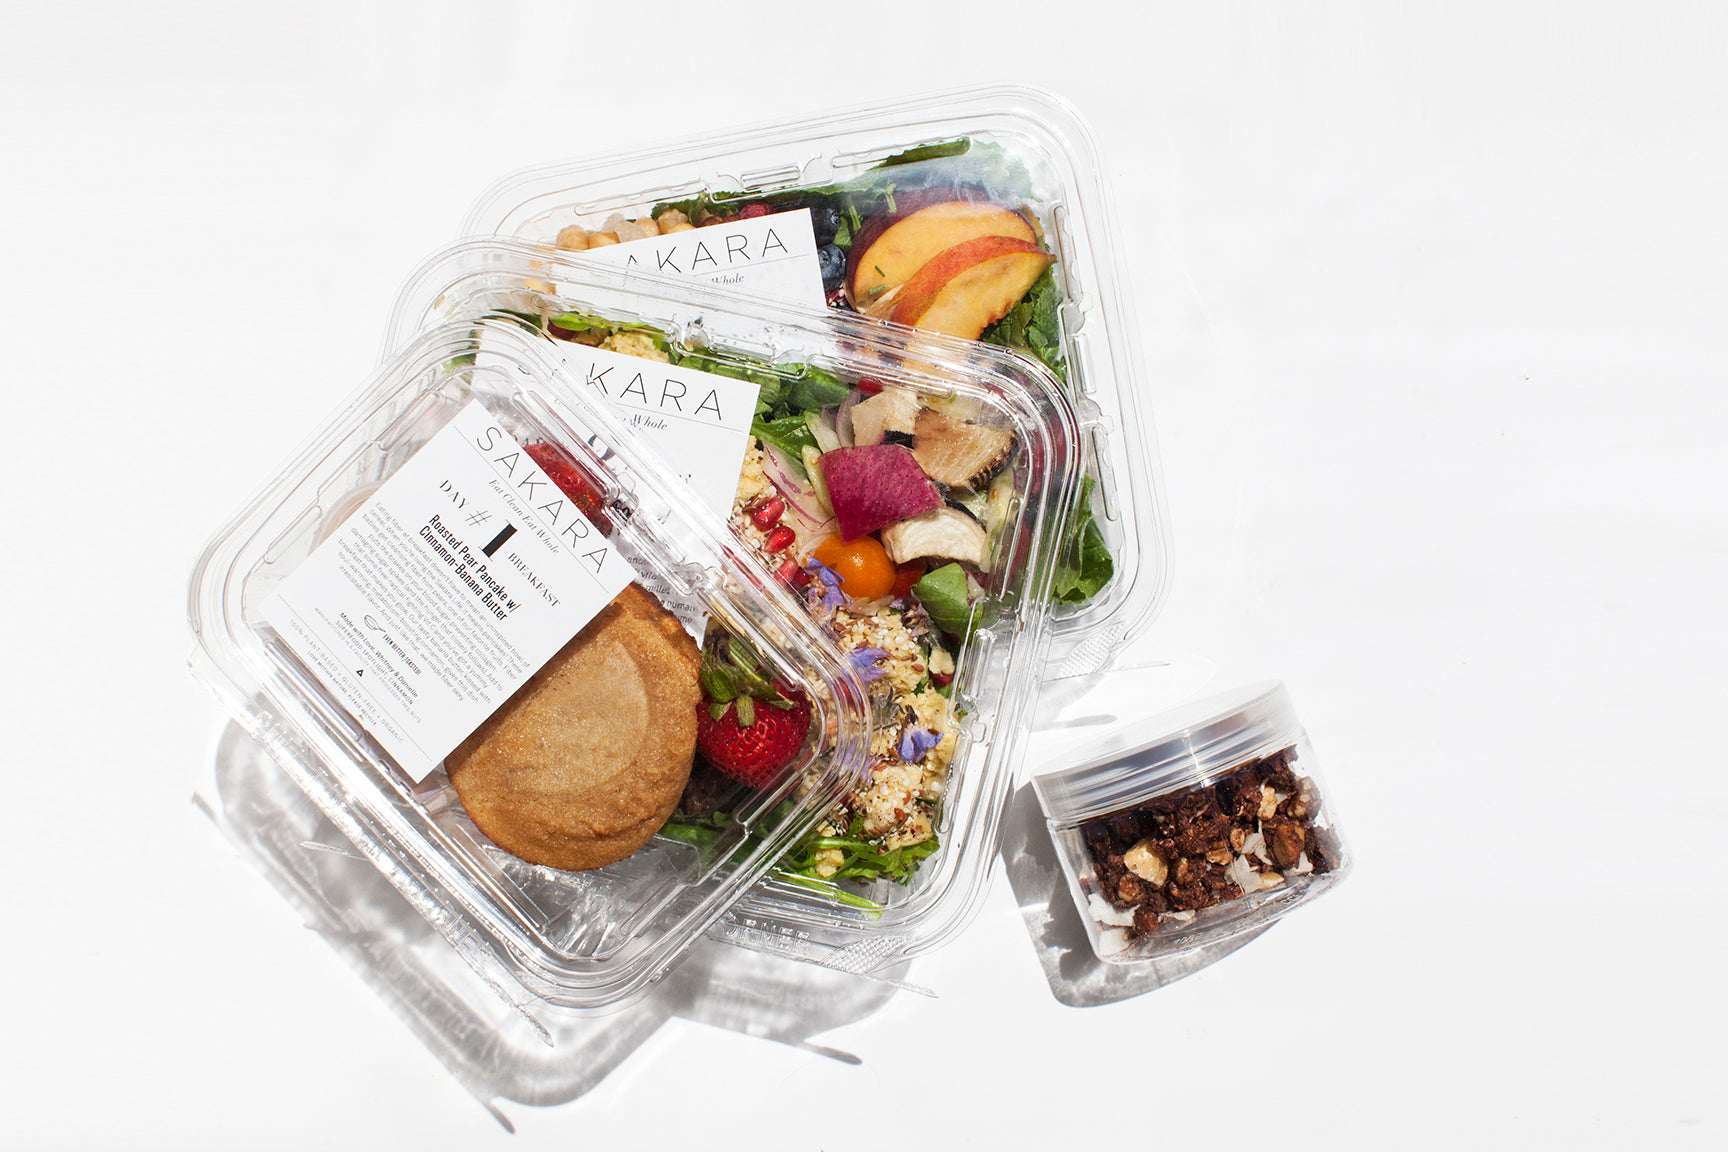 2 Week Affiliate Organic Meal Delivery NY-LA: 5 Day - 2 Week Affiliate Organic Meal Delivery NY-LA: 5 Day